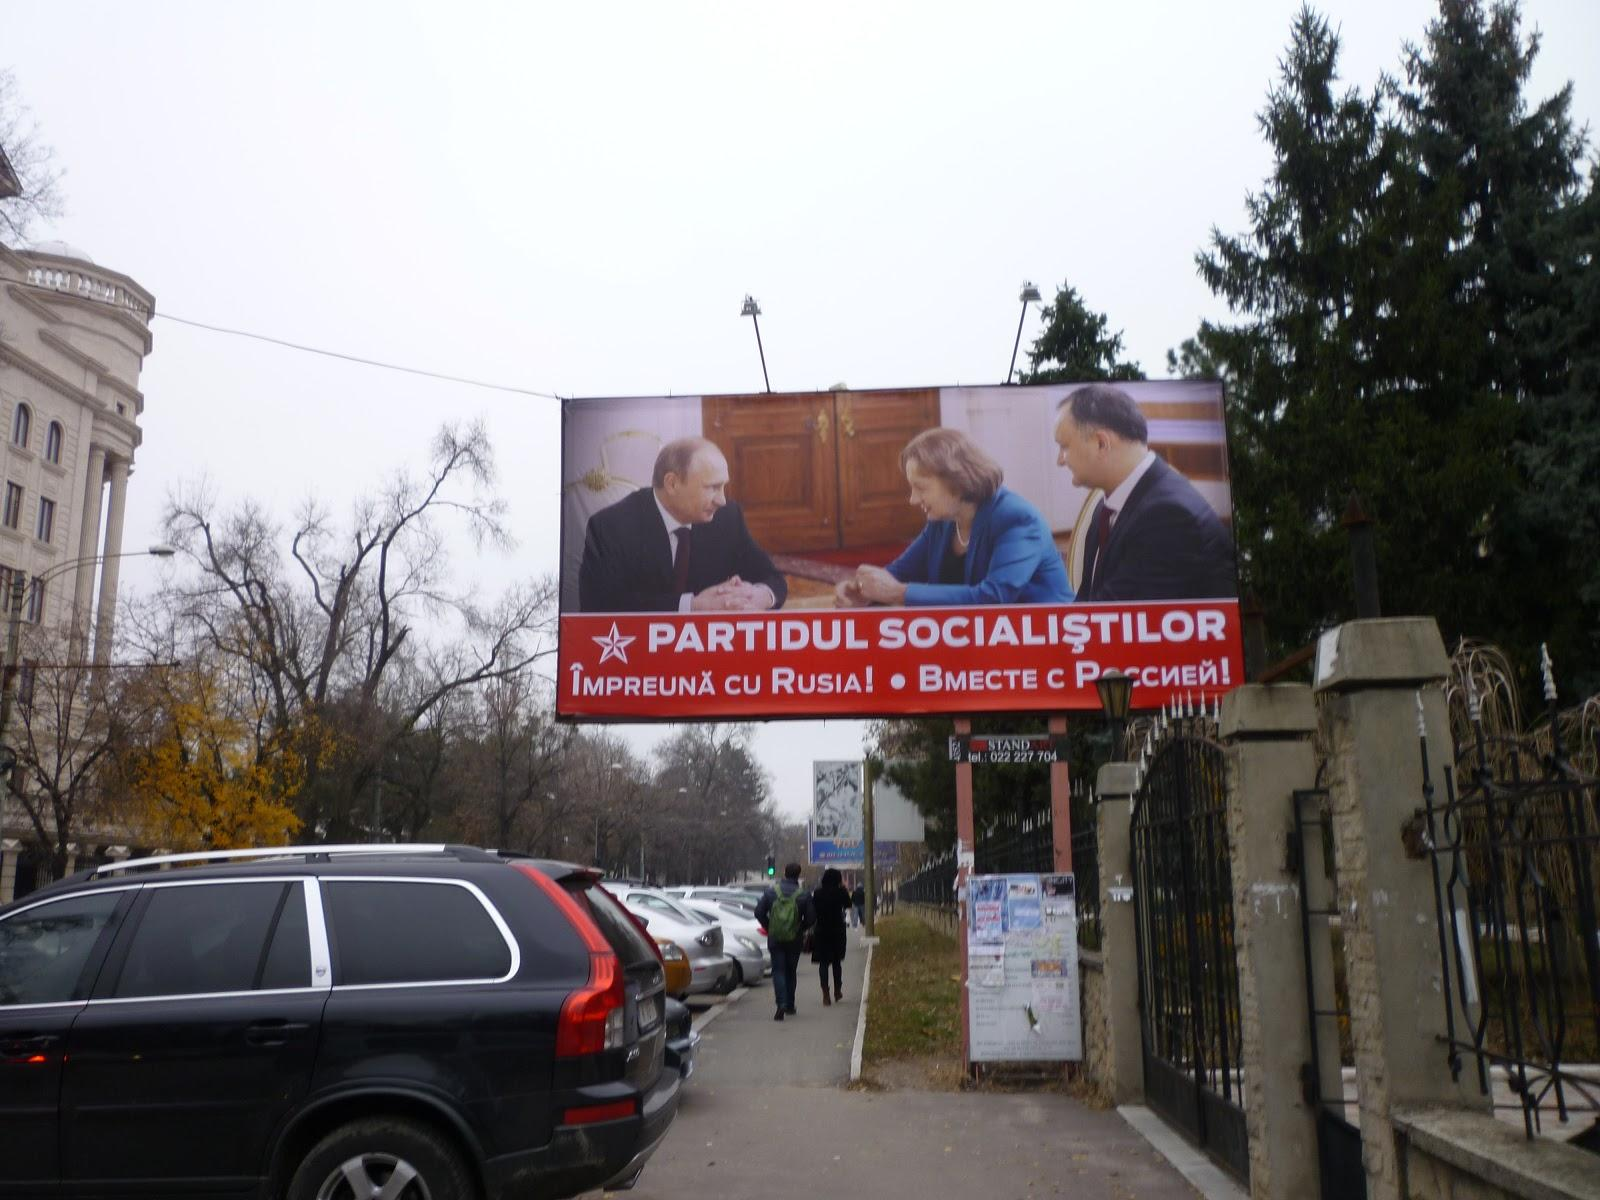 'Together with Russia', PSRM electoral posters featuring Vladimir Putin, Zinaida Greceanîi and Igor Dodon. Photo: Amy Samuelson